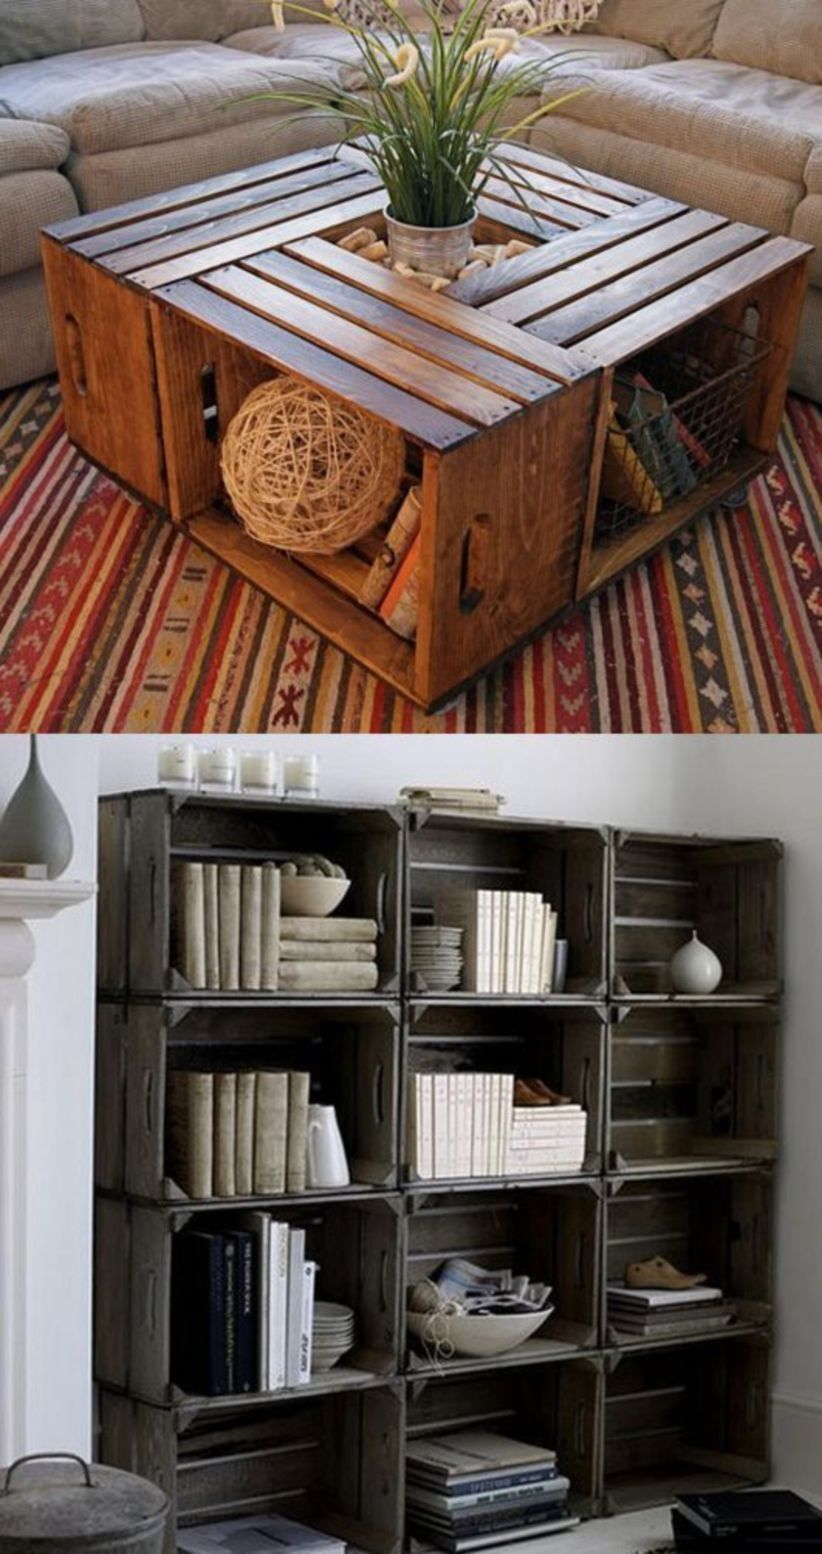 Photo of Nice 46 DIY Wooden Furniture Ideas That Inspire homiku.com/…